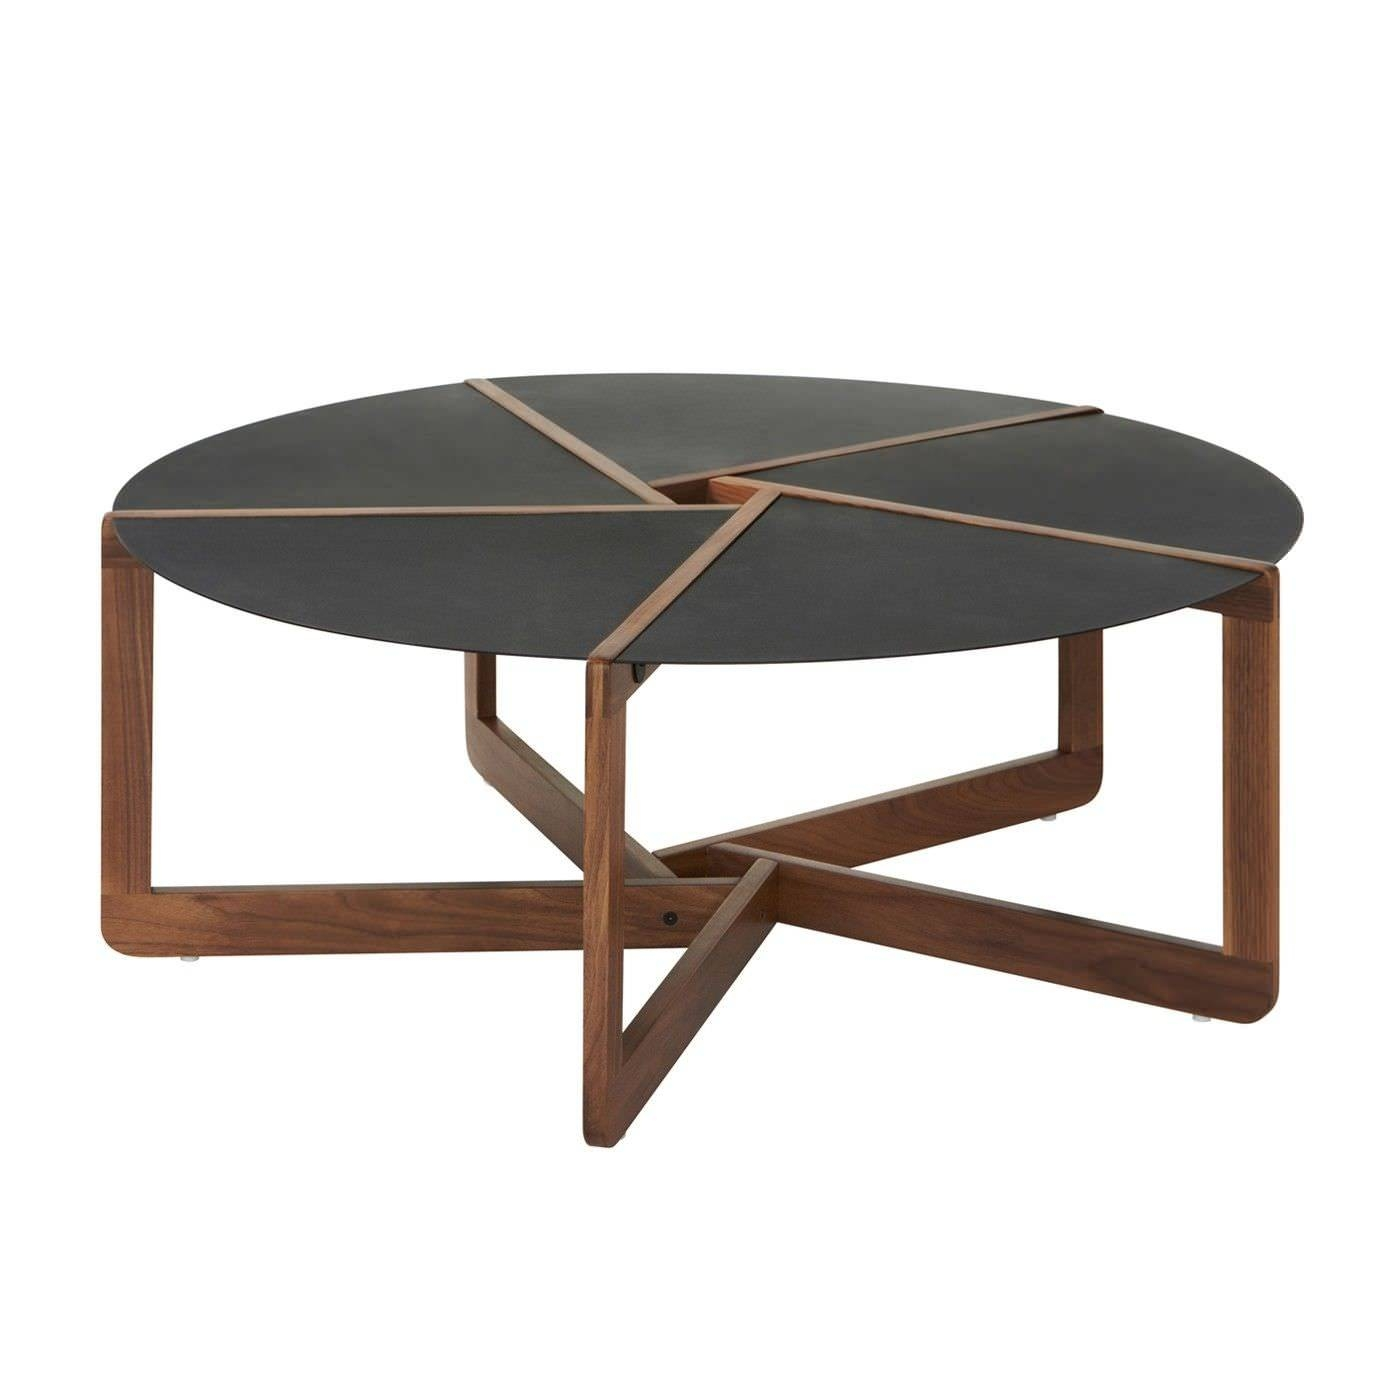 Round Contemporary Coffee Table 15 Collection Of Contemporary Round Coffee Tables